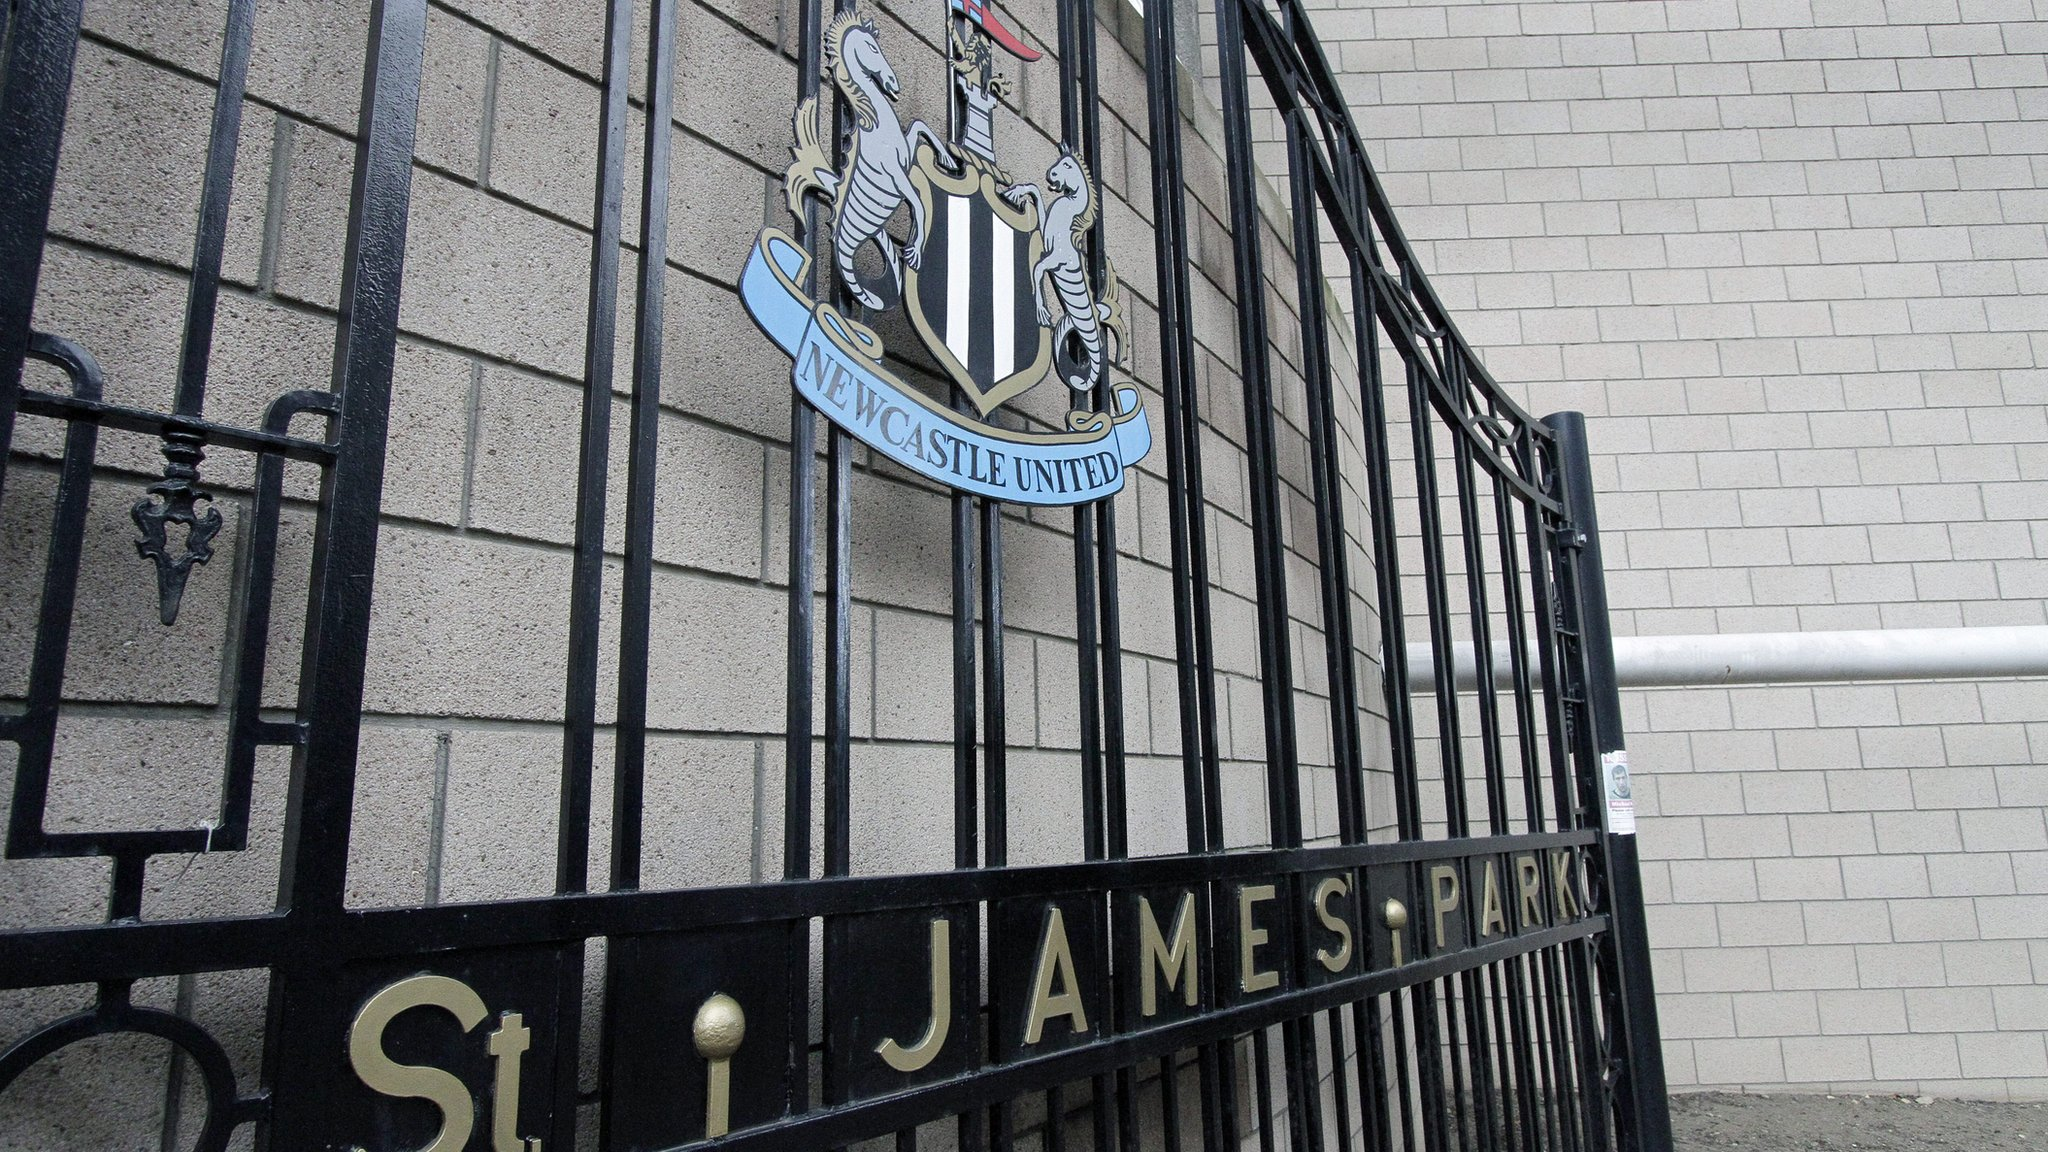 Newcastle United aim for 'quality not quantity' in transfer market says Lee Charnley